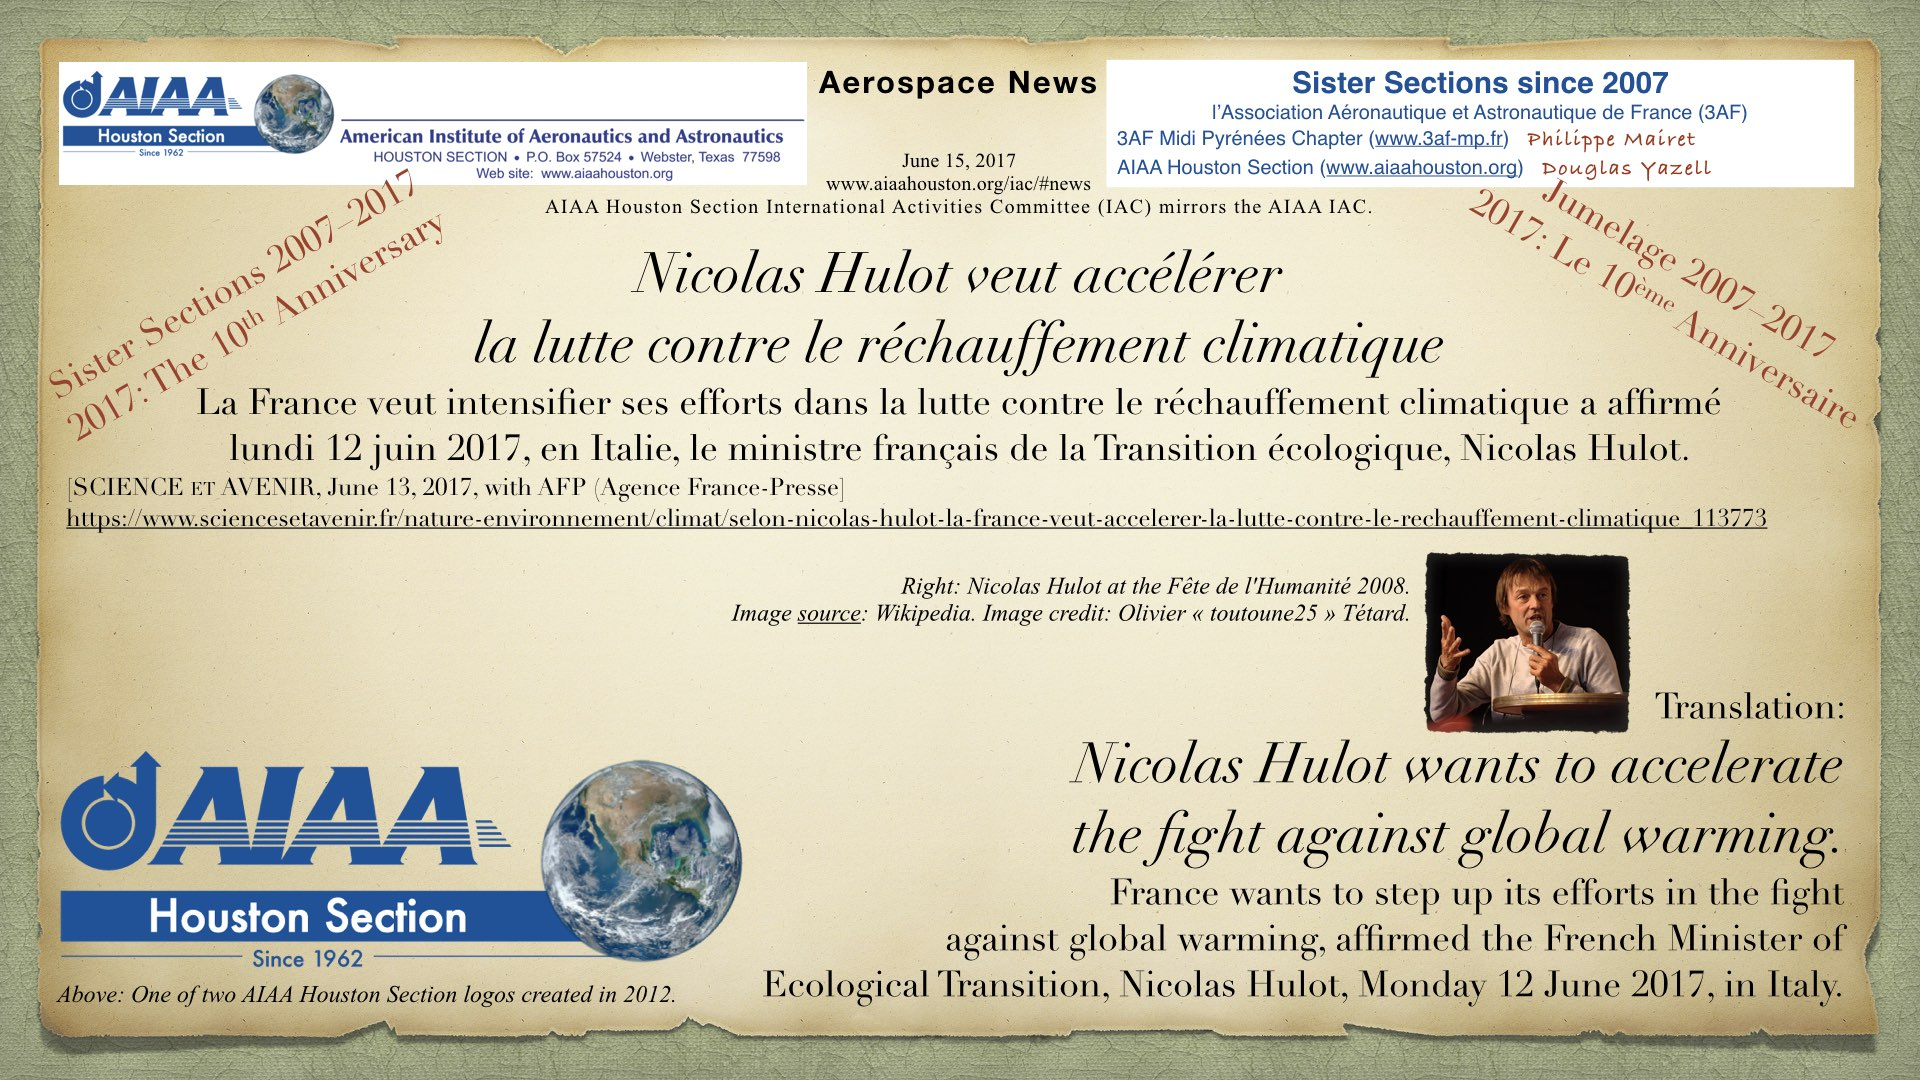 Above: Nicolas Hulot wants to accelerate the fight against global warming. France wants to step up its efforts in the fight against global warming, affirmed the French Minister of Ecological Transition, Nicolas Hulot, Monday 12 June 2017, in Italy. (Click to zoom.)